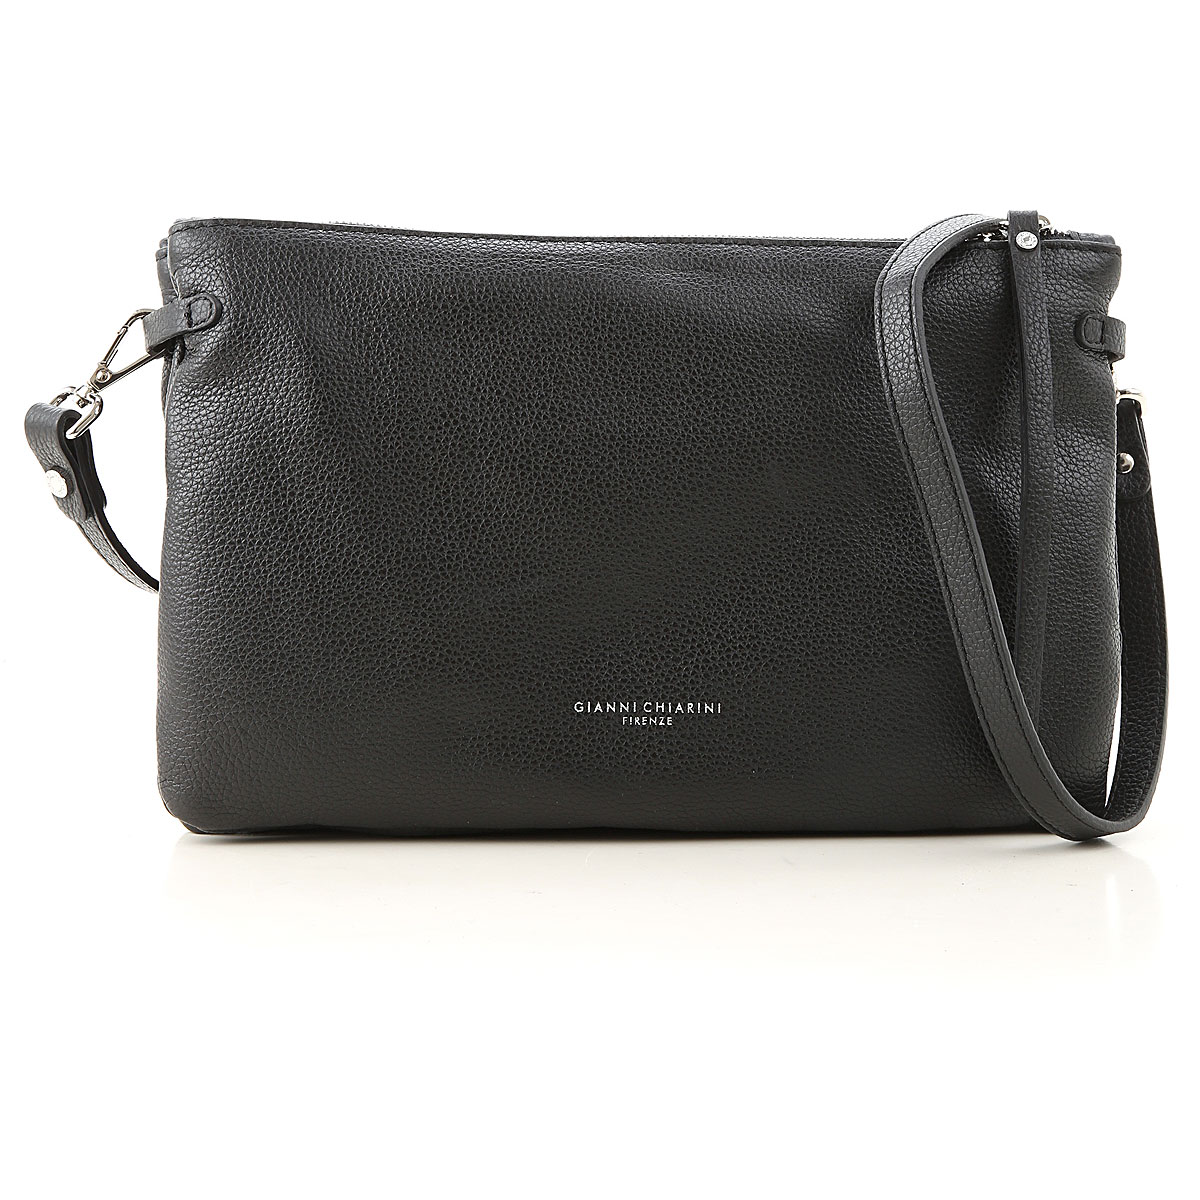 Gianni Chiarini Shoulder Bag for Women On Sale, Black, Leather, 2019